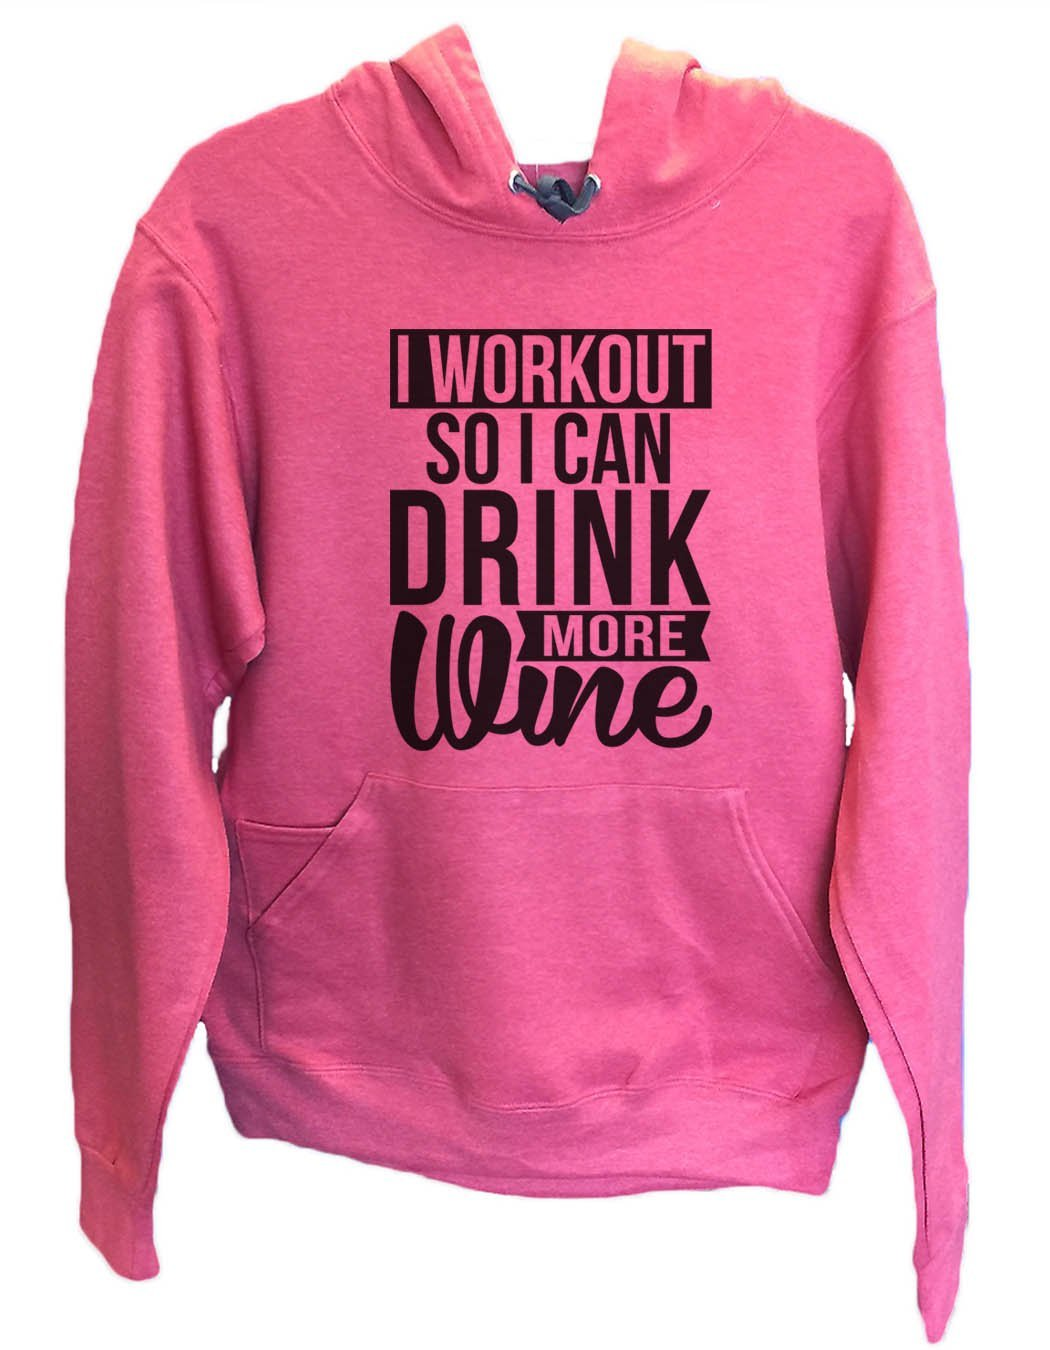 UNISEX HOODIE - I Workout So I Can Drink More Wine - FUNNY MENS AND WOMENS HOODED SWEATSHIRTS - 2133 Funny Shirt Small / Cranberry Red